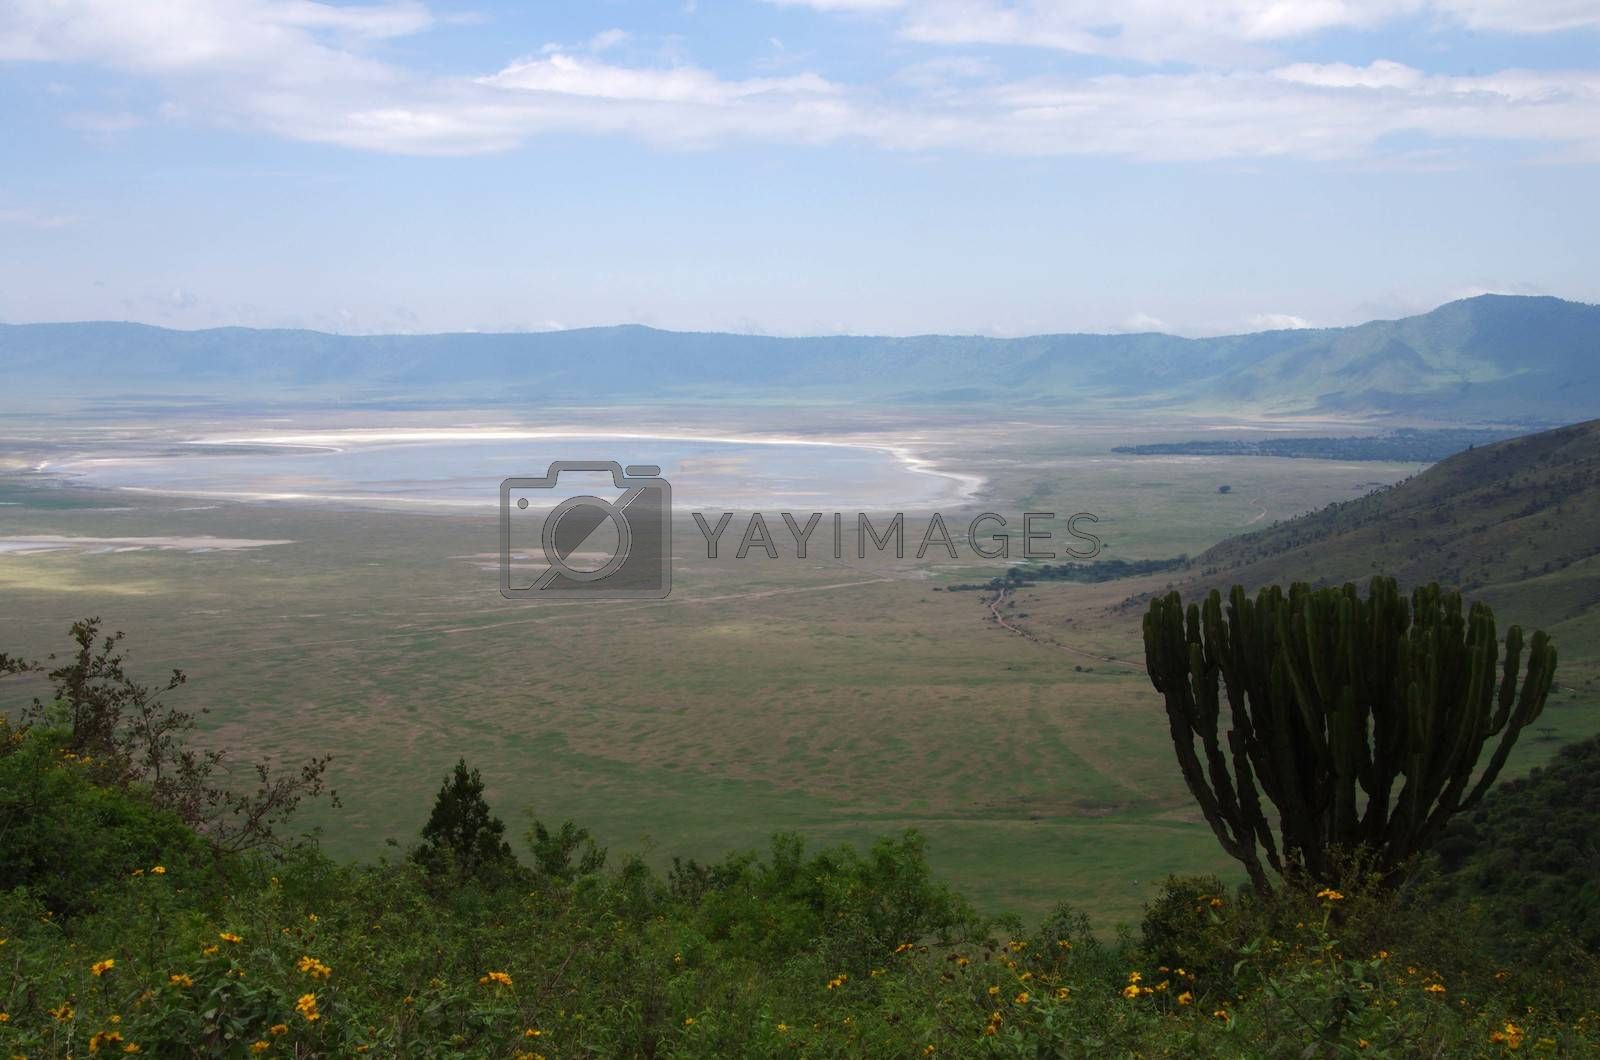 Royalty free image of The ngorongoro crater in Tanzania by pascalou95